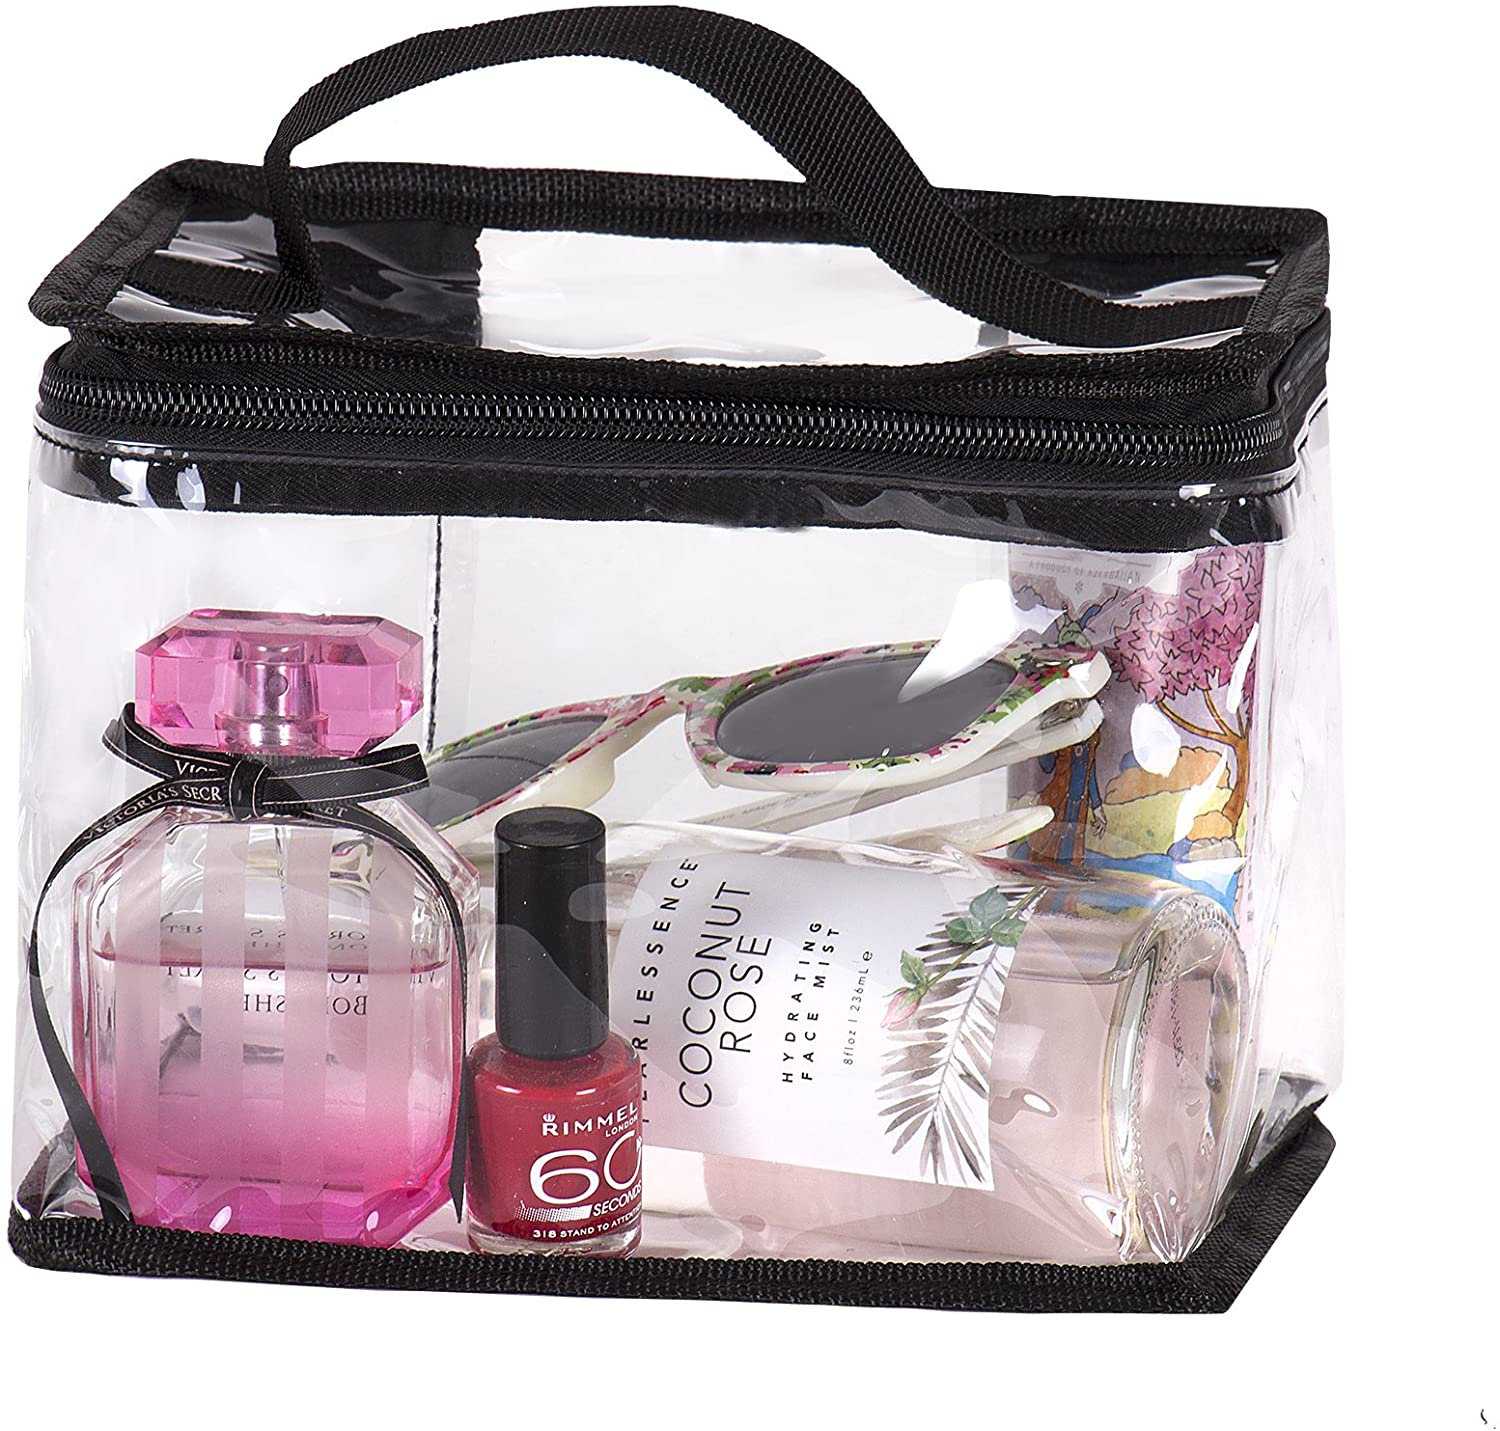 Clear Travel Train Bag for Lunch Case Carry On or Cosmetics Makeup Toiletries with Top HandleLarge